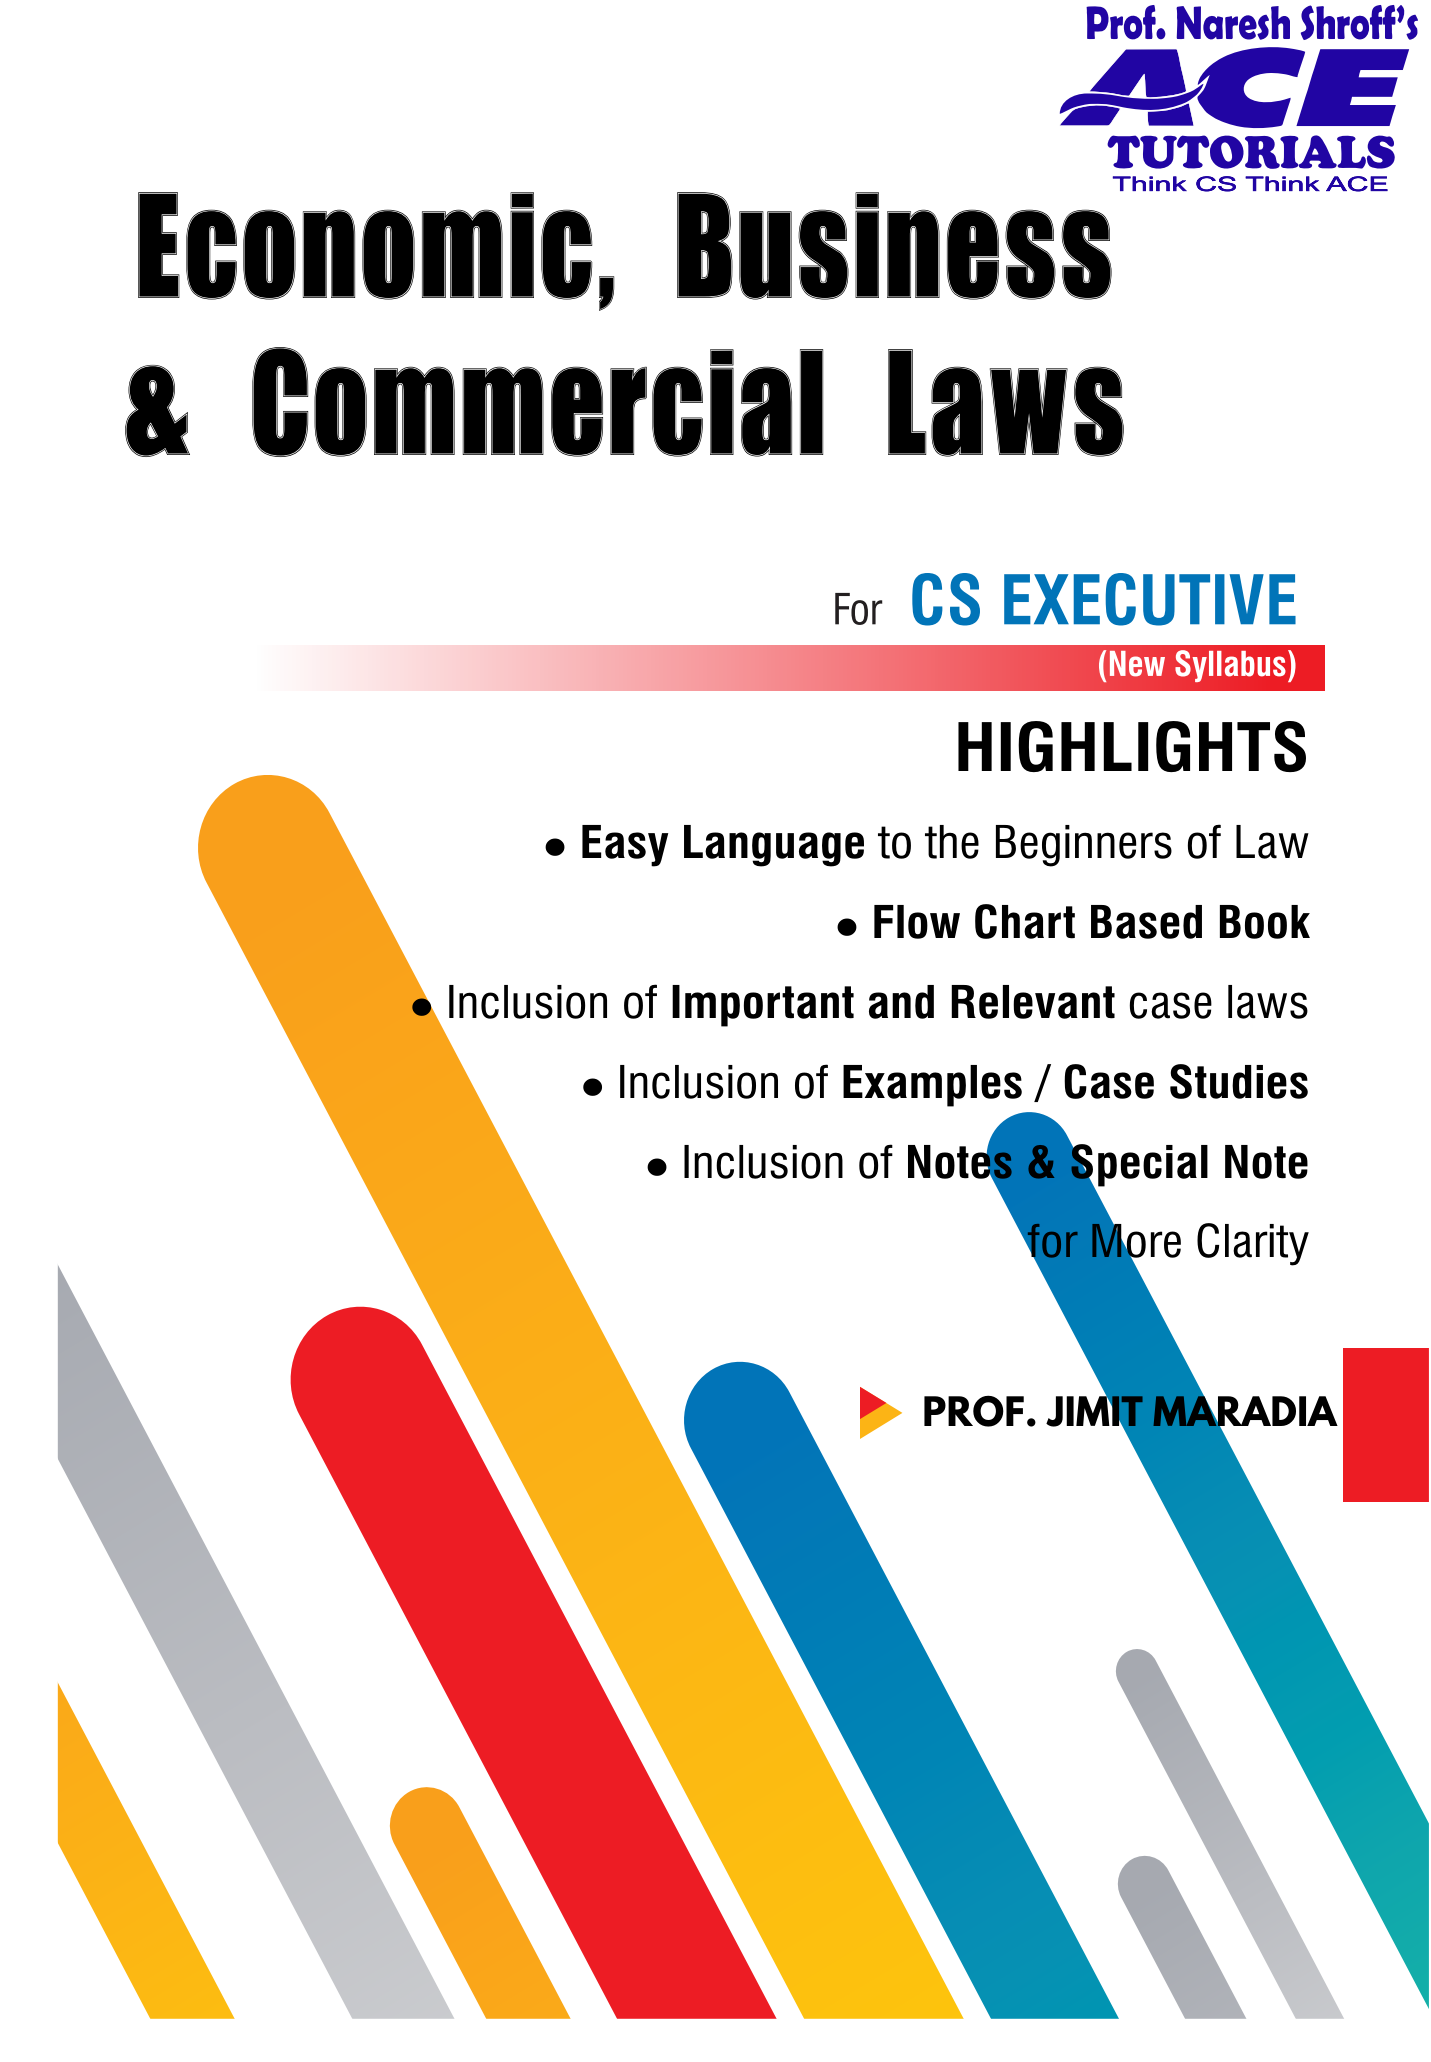 Paper 7.Economic, Business And Commercial Laws_Hard Copy